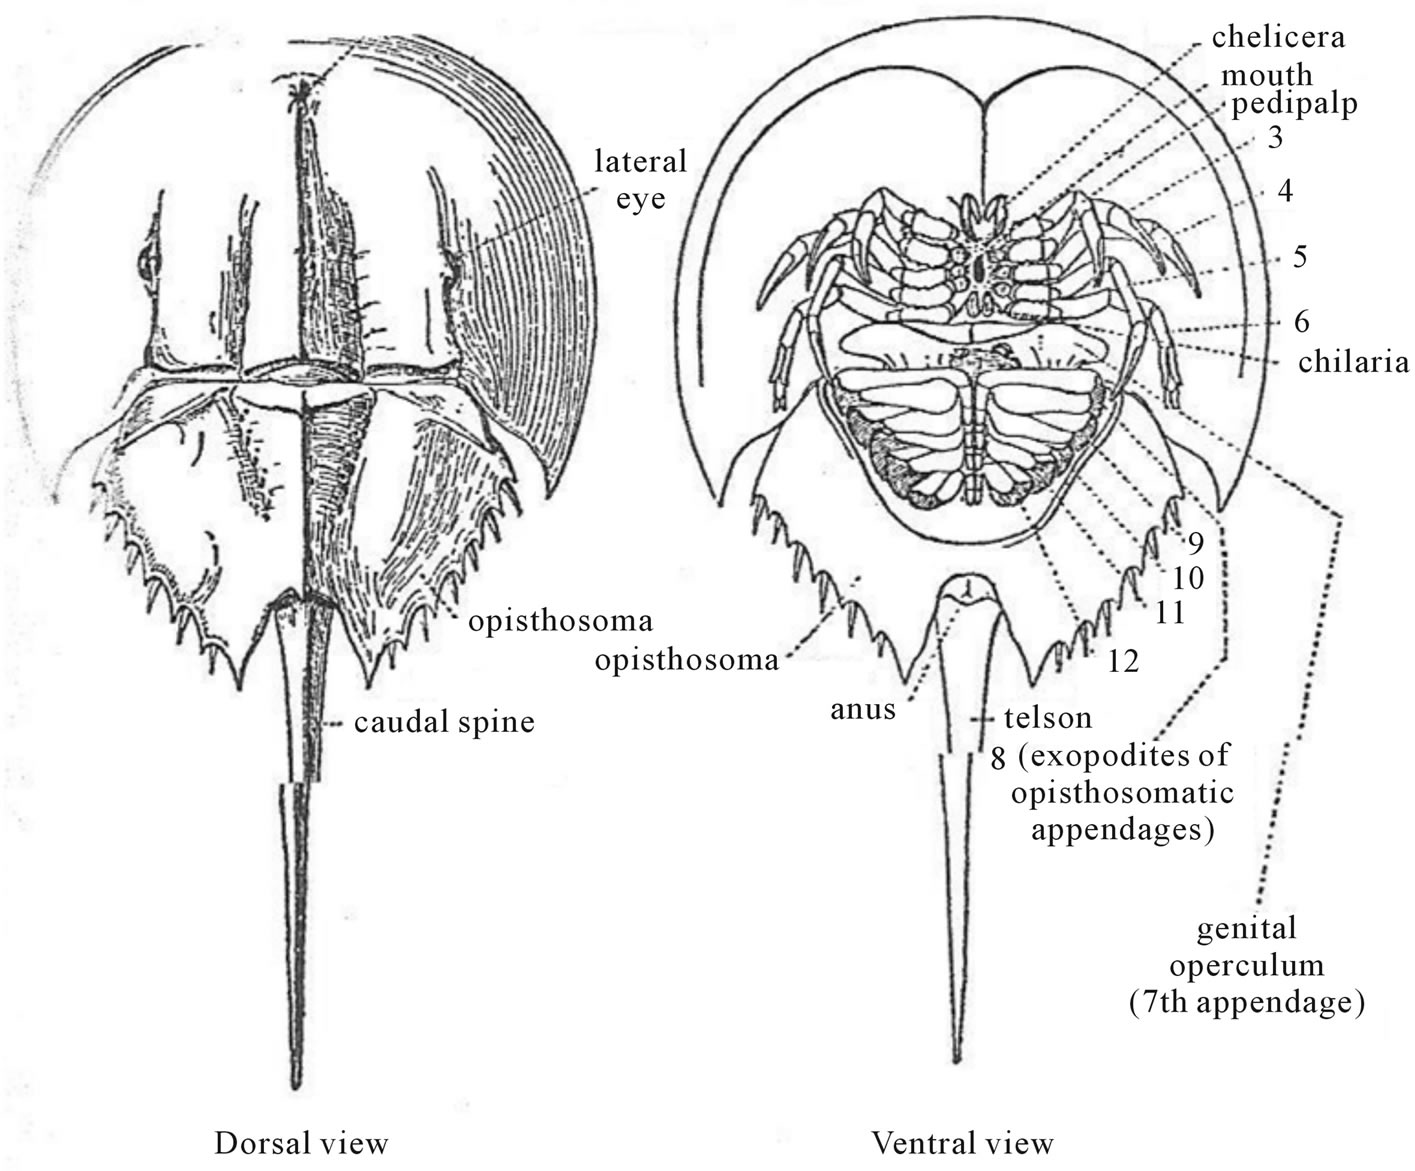 Horseshoe crab anatomy - crazywidow.info